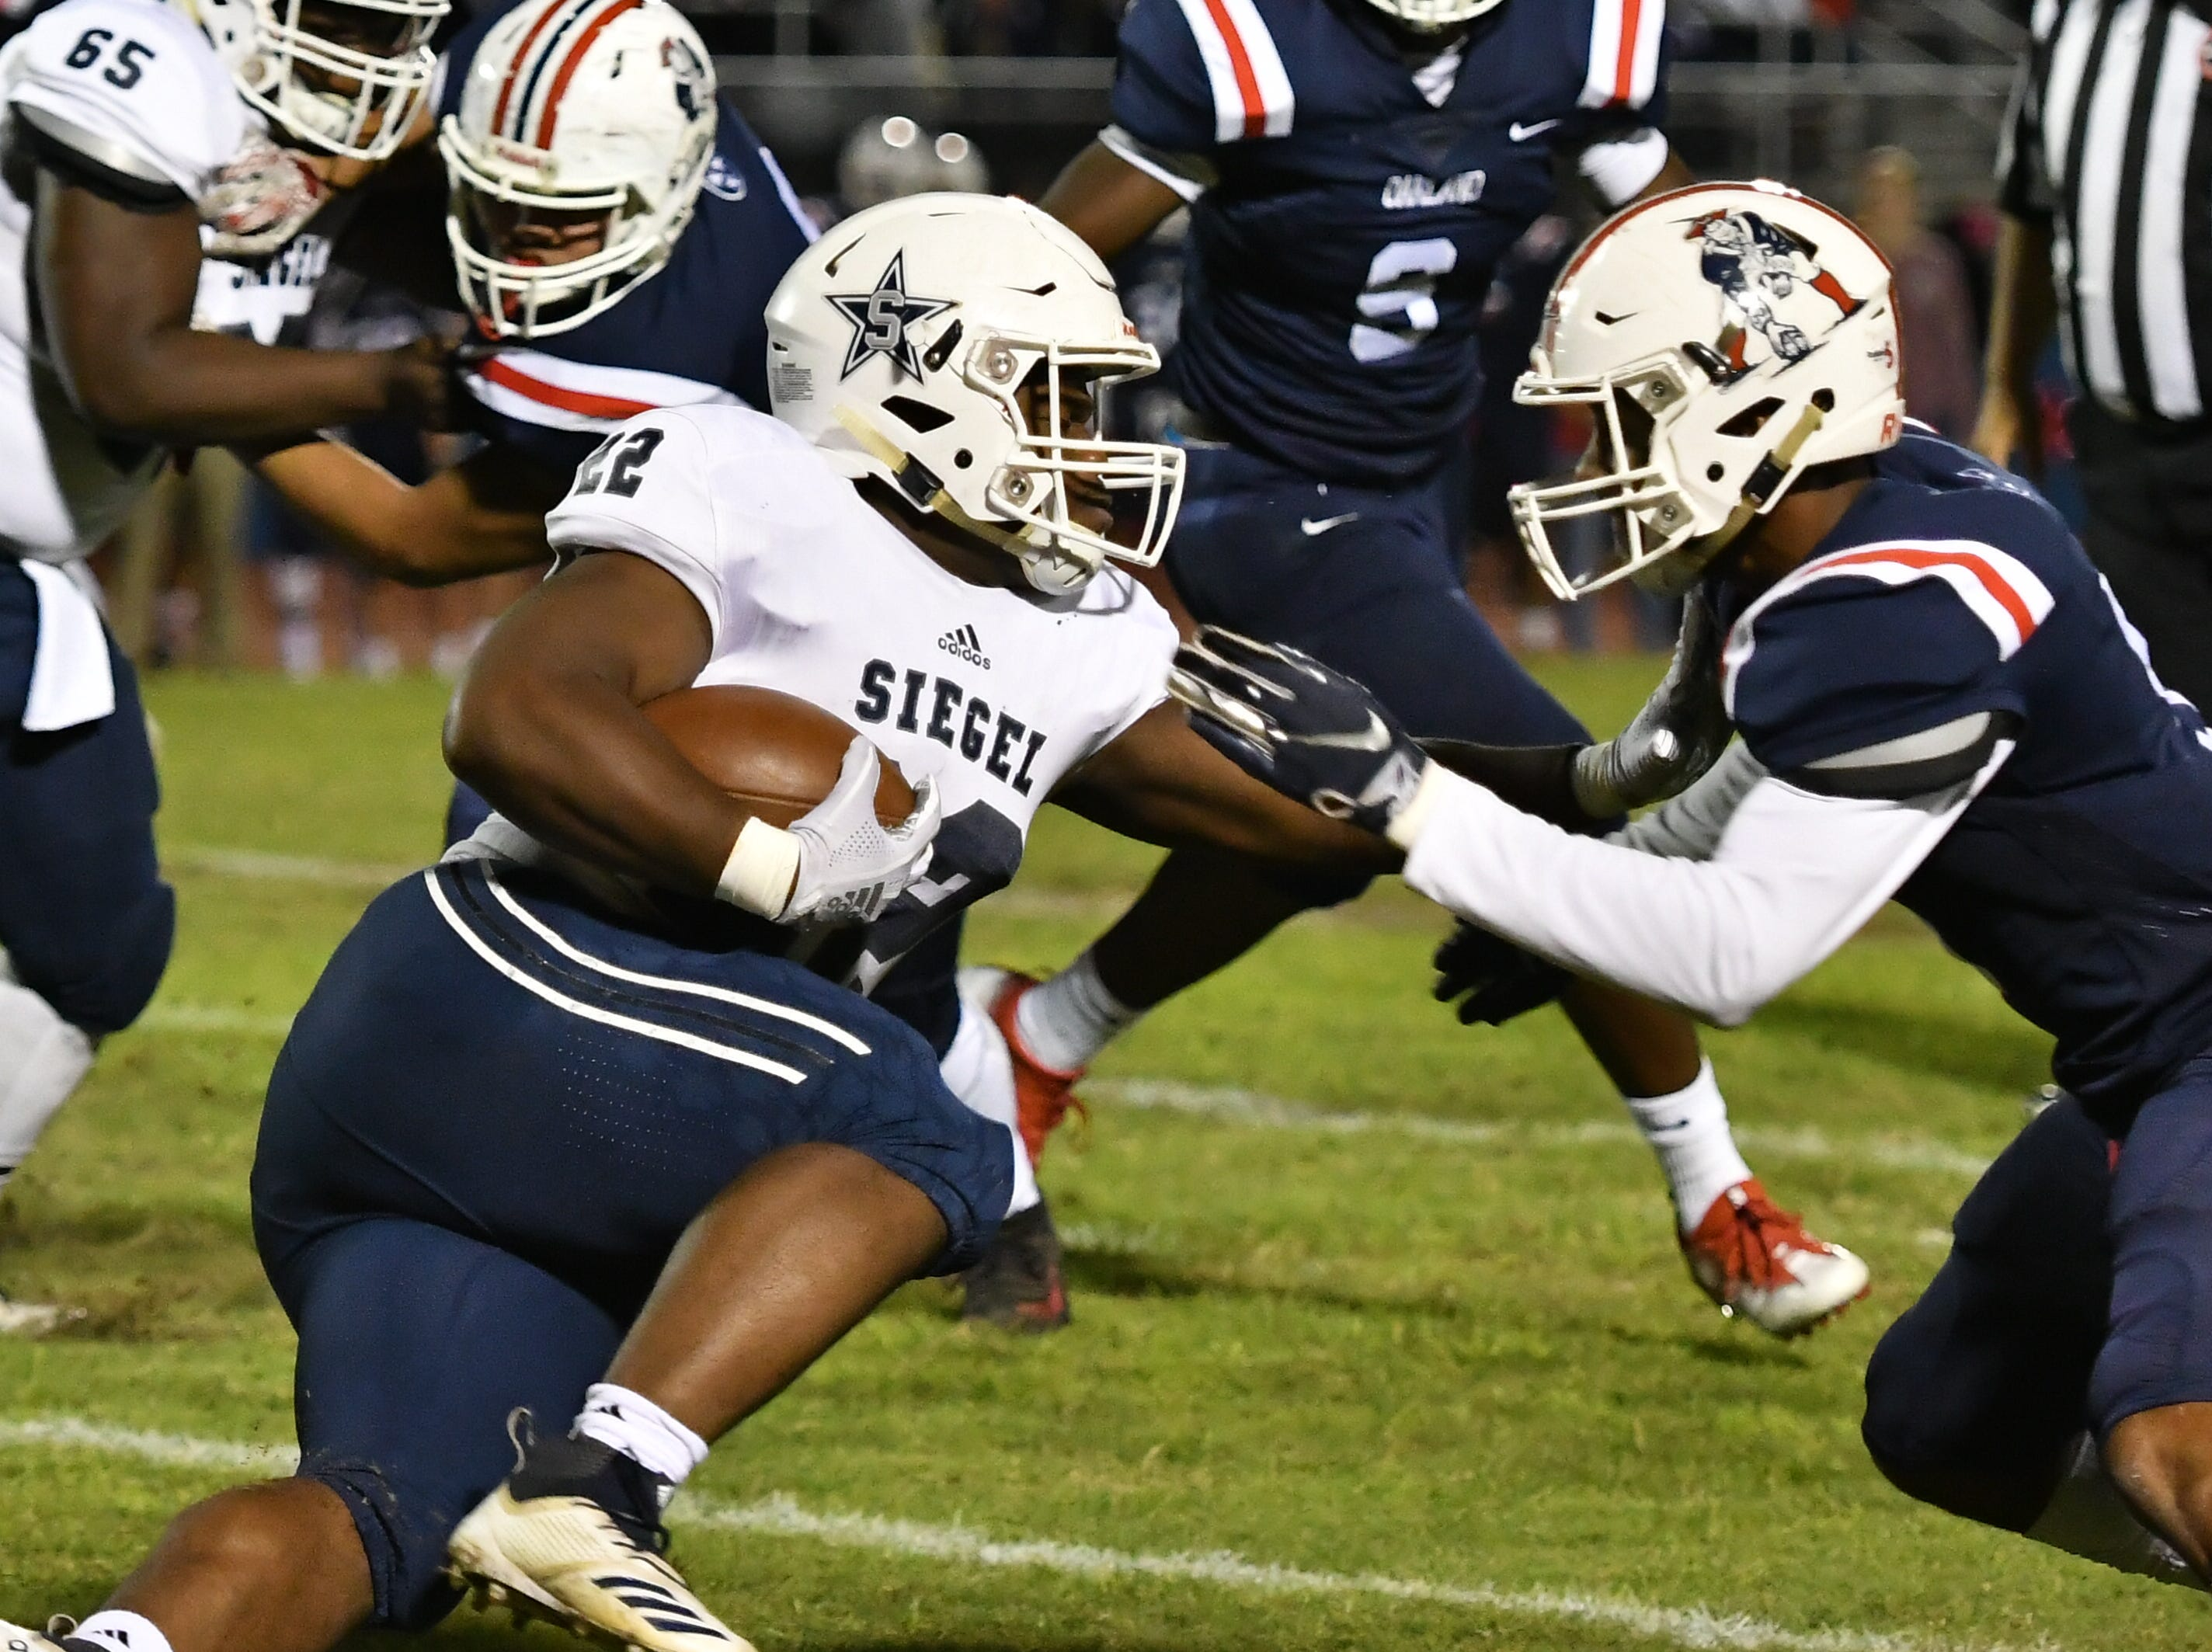 Siegel running back Pat Boykins carries the ball against Oakland Friday night.